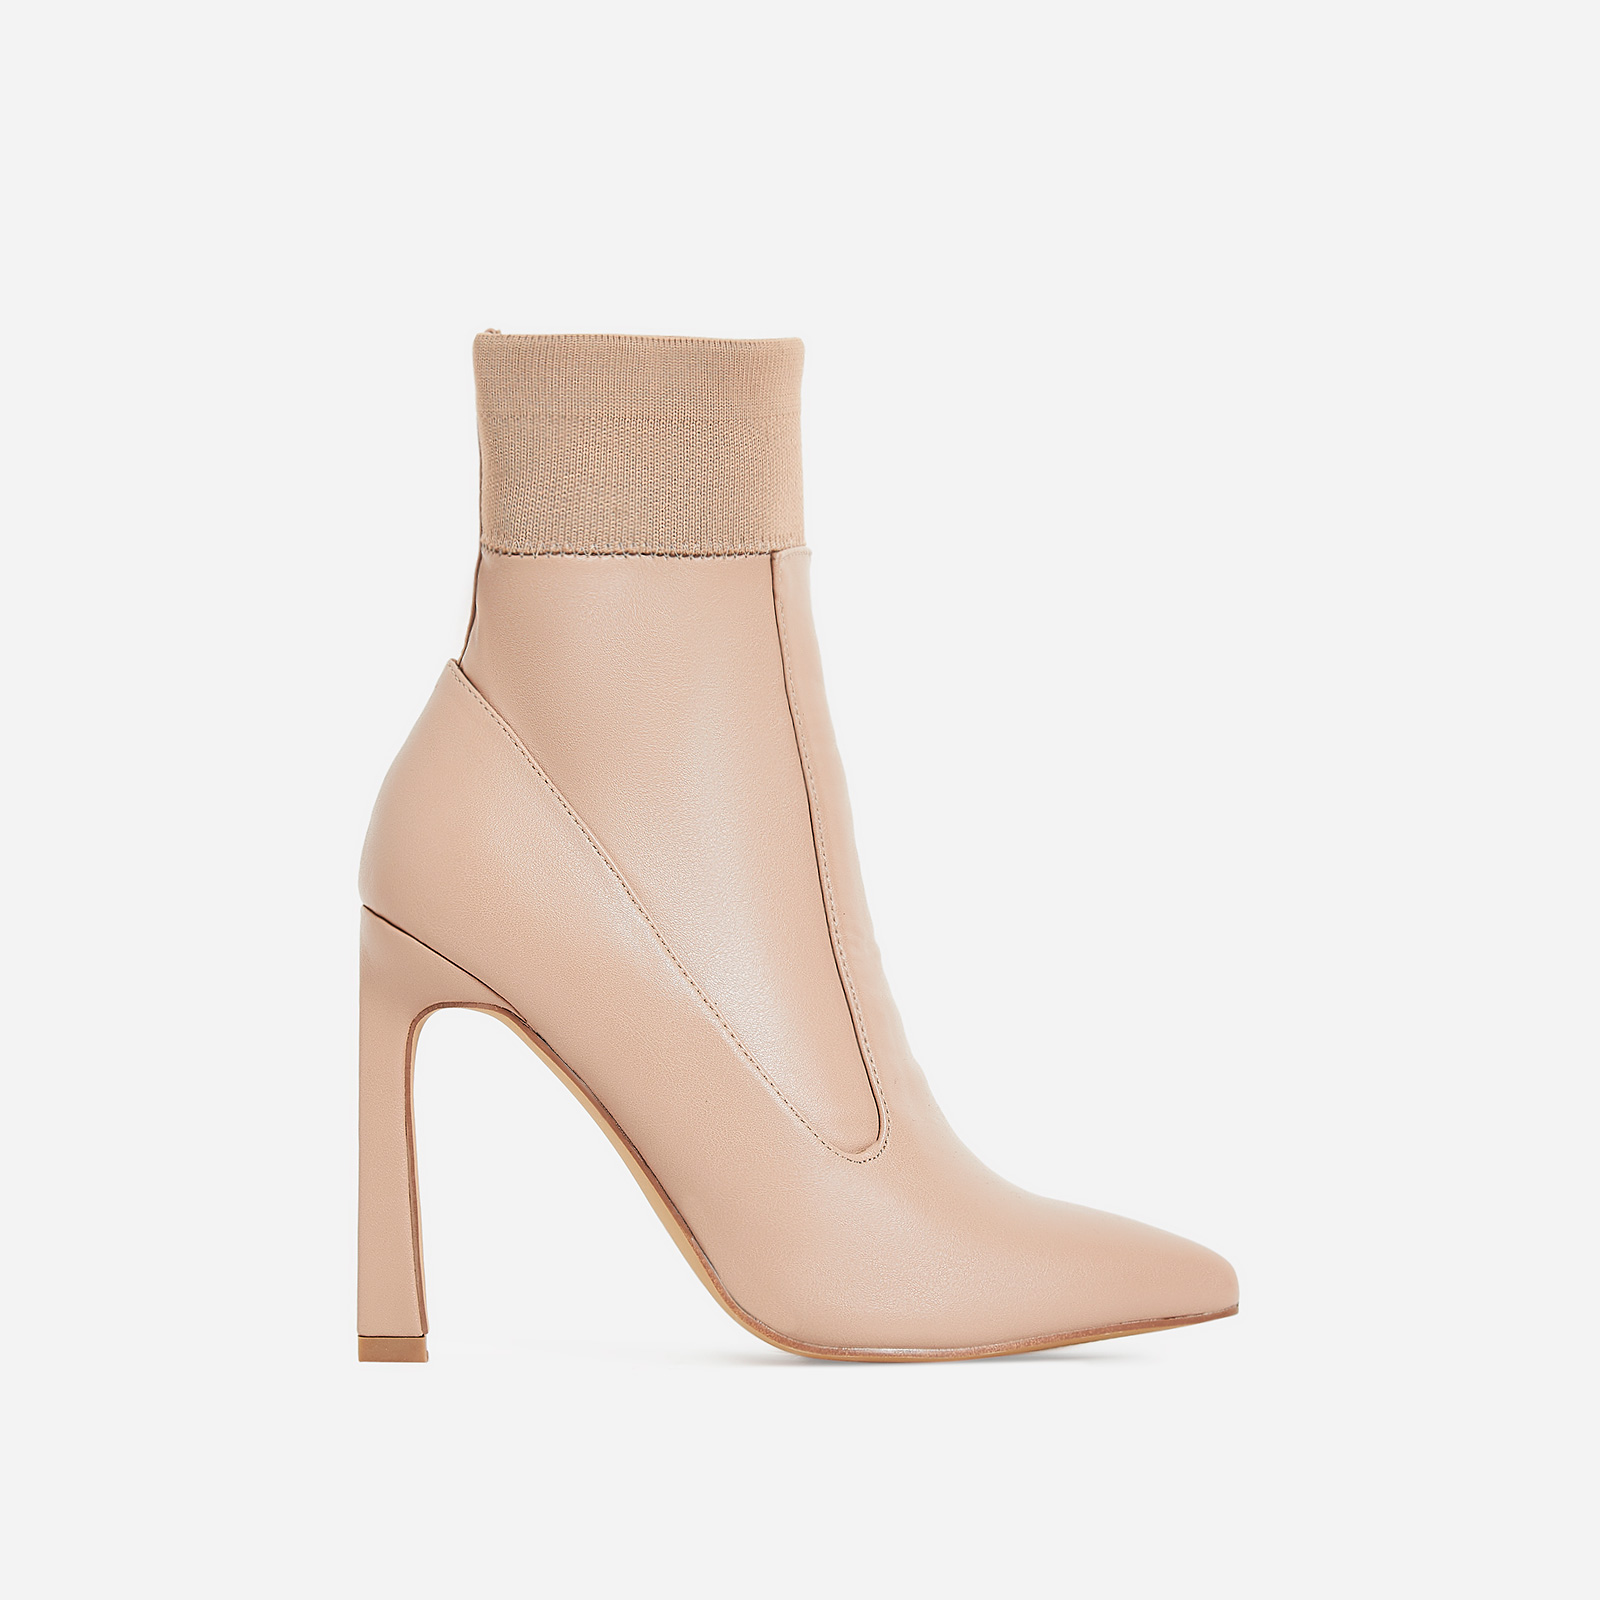 Elaina Flared Stiletto Heel Ankle Sock Boot In Nude Faux Leather